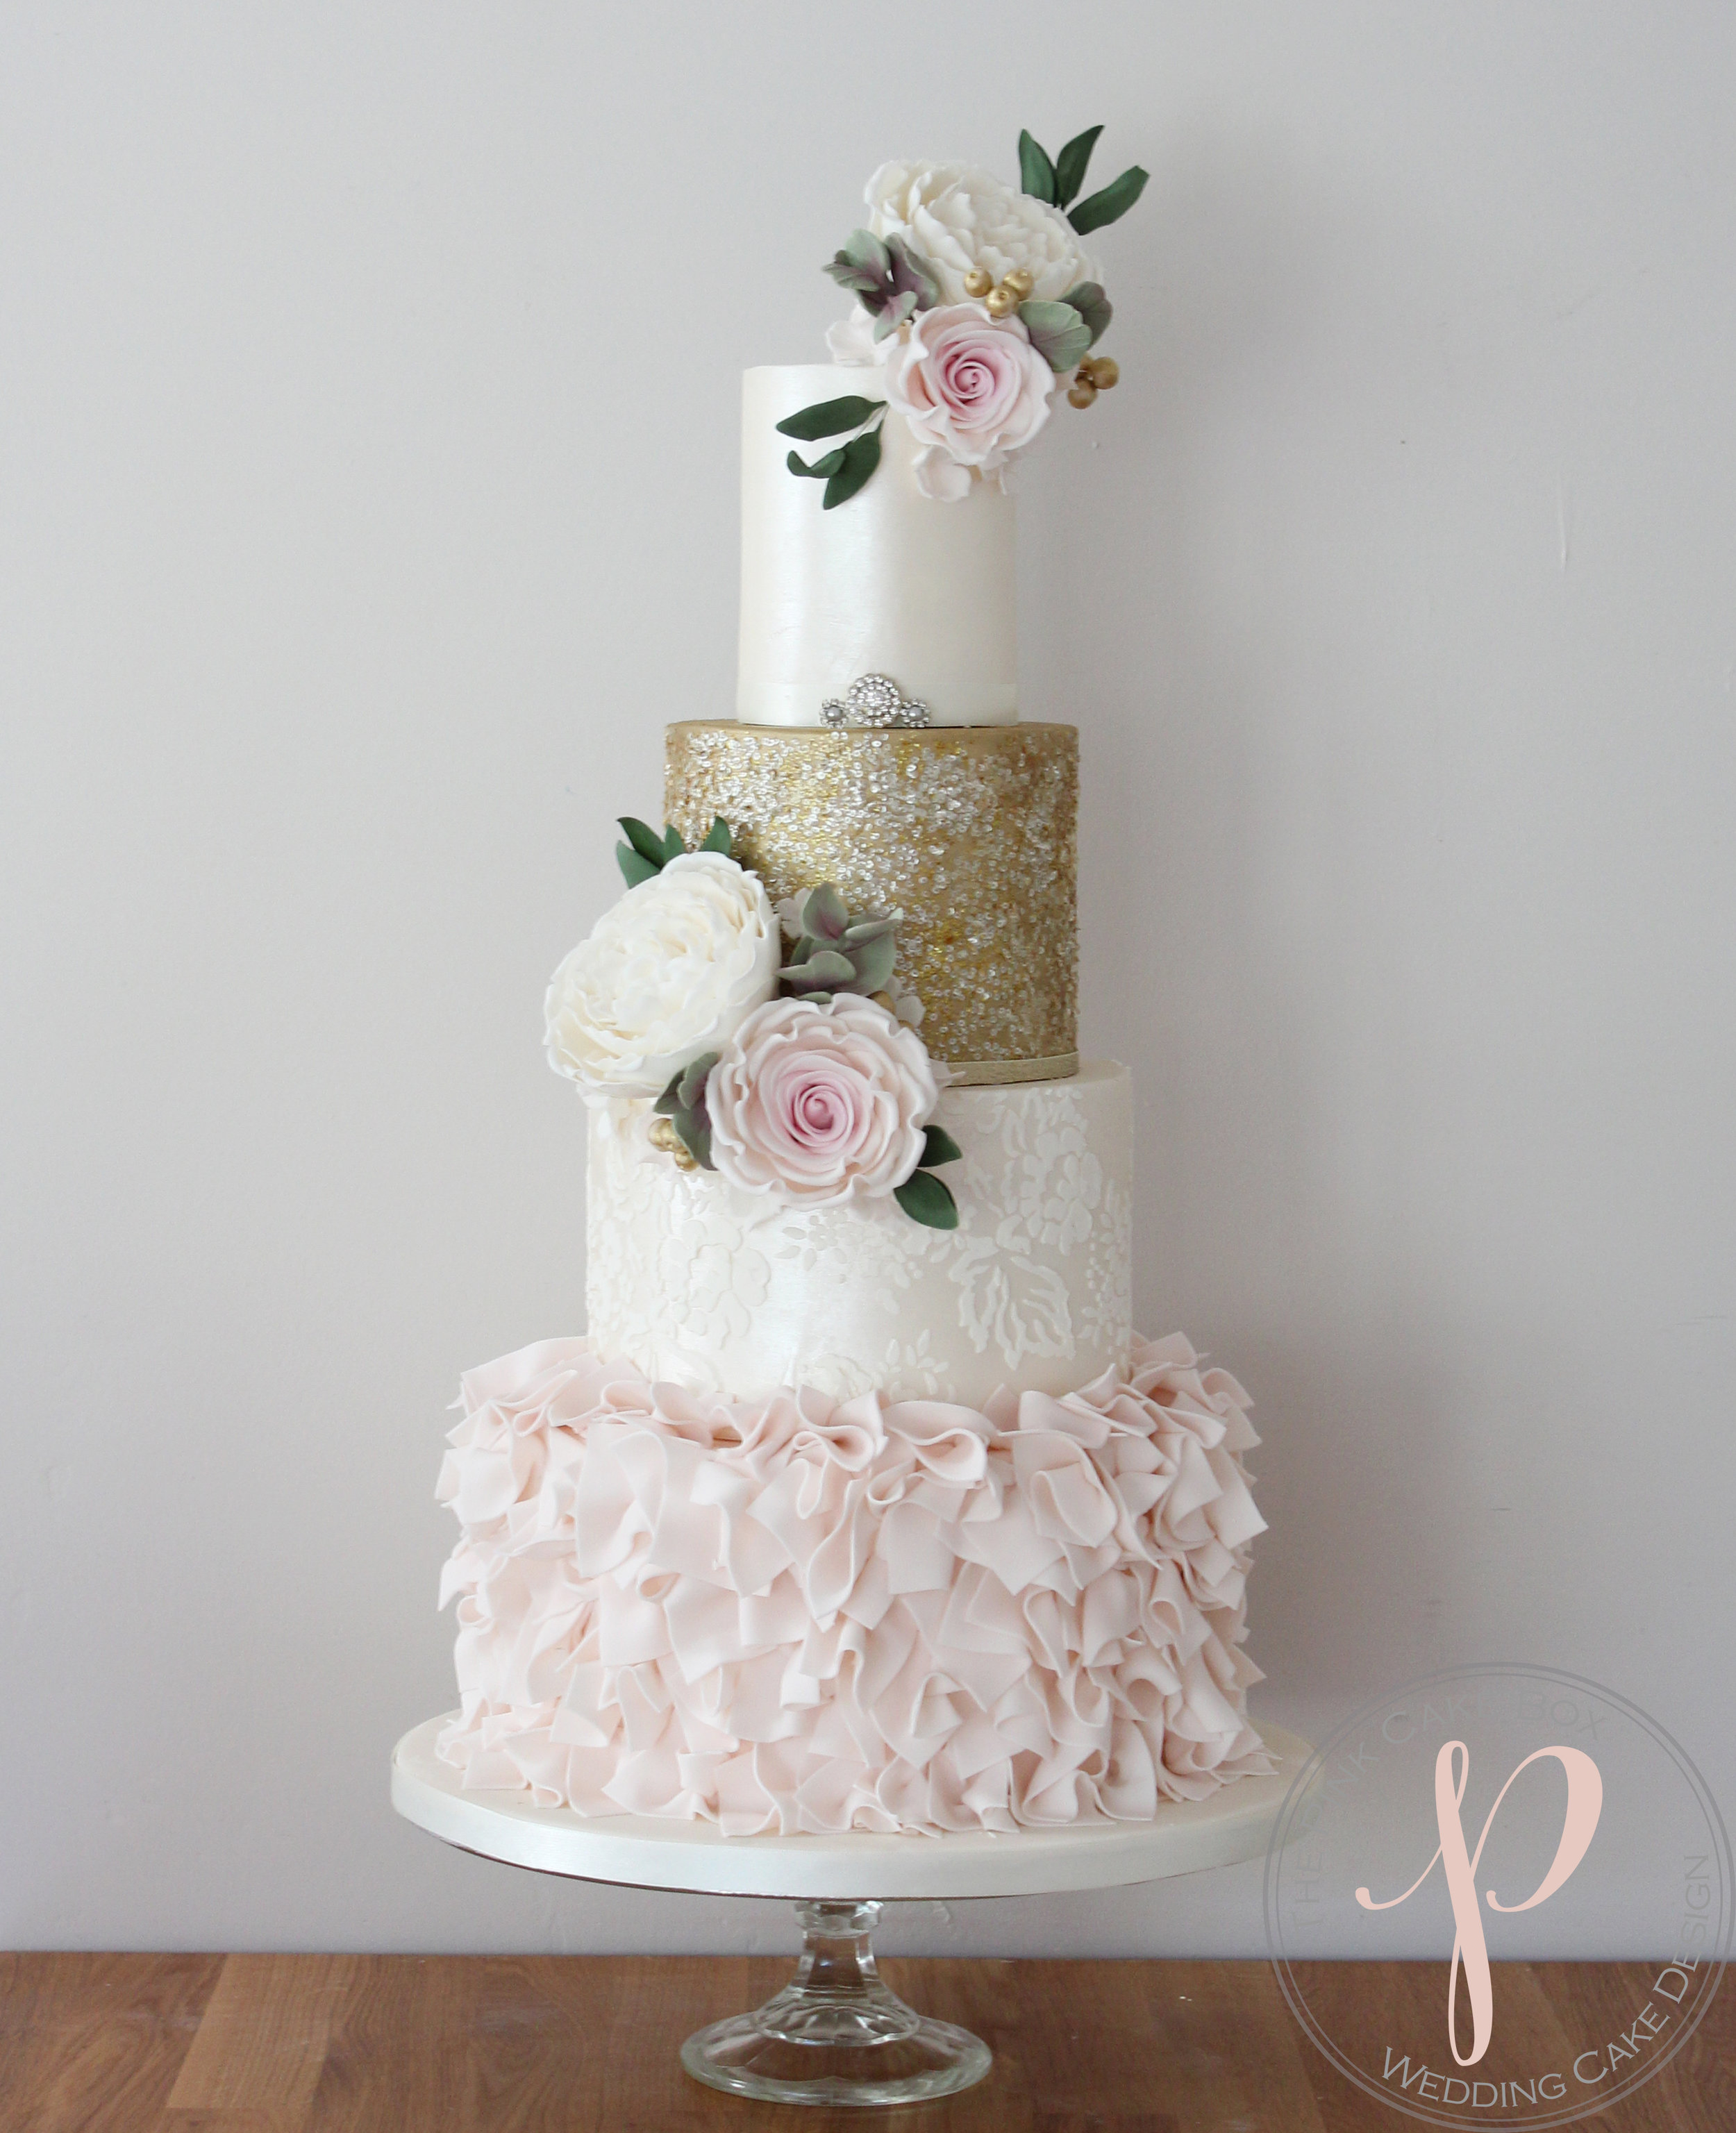 blush ruffle, gold sequin, lace lustre sugar flower wedding cake.jpg